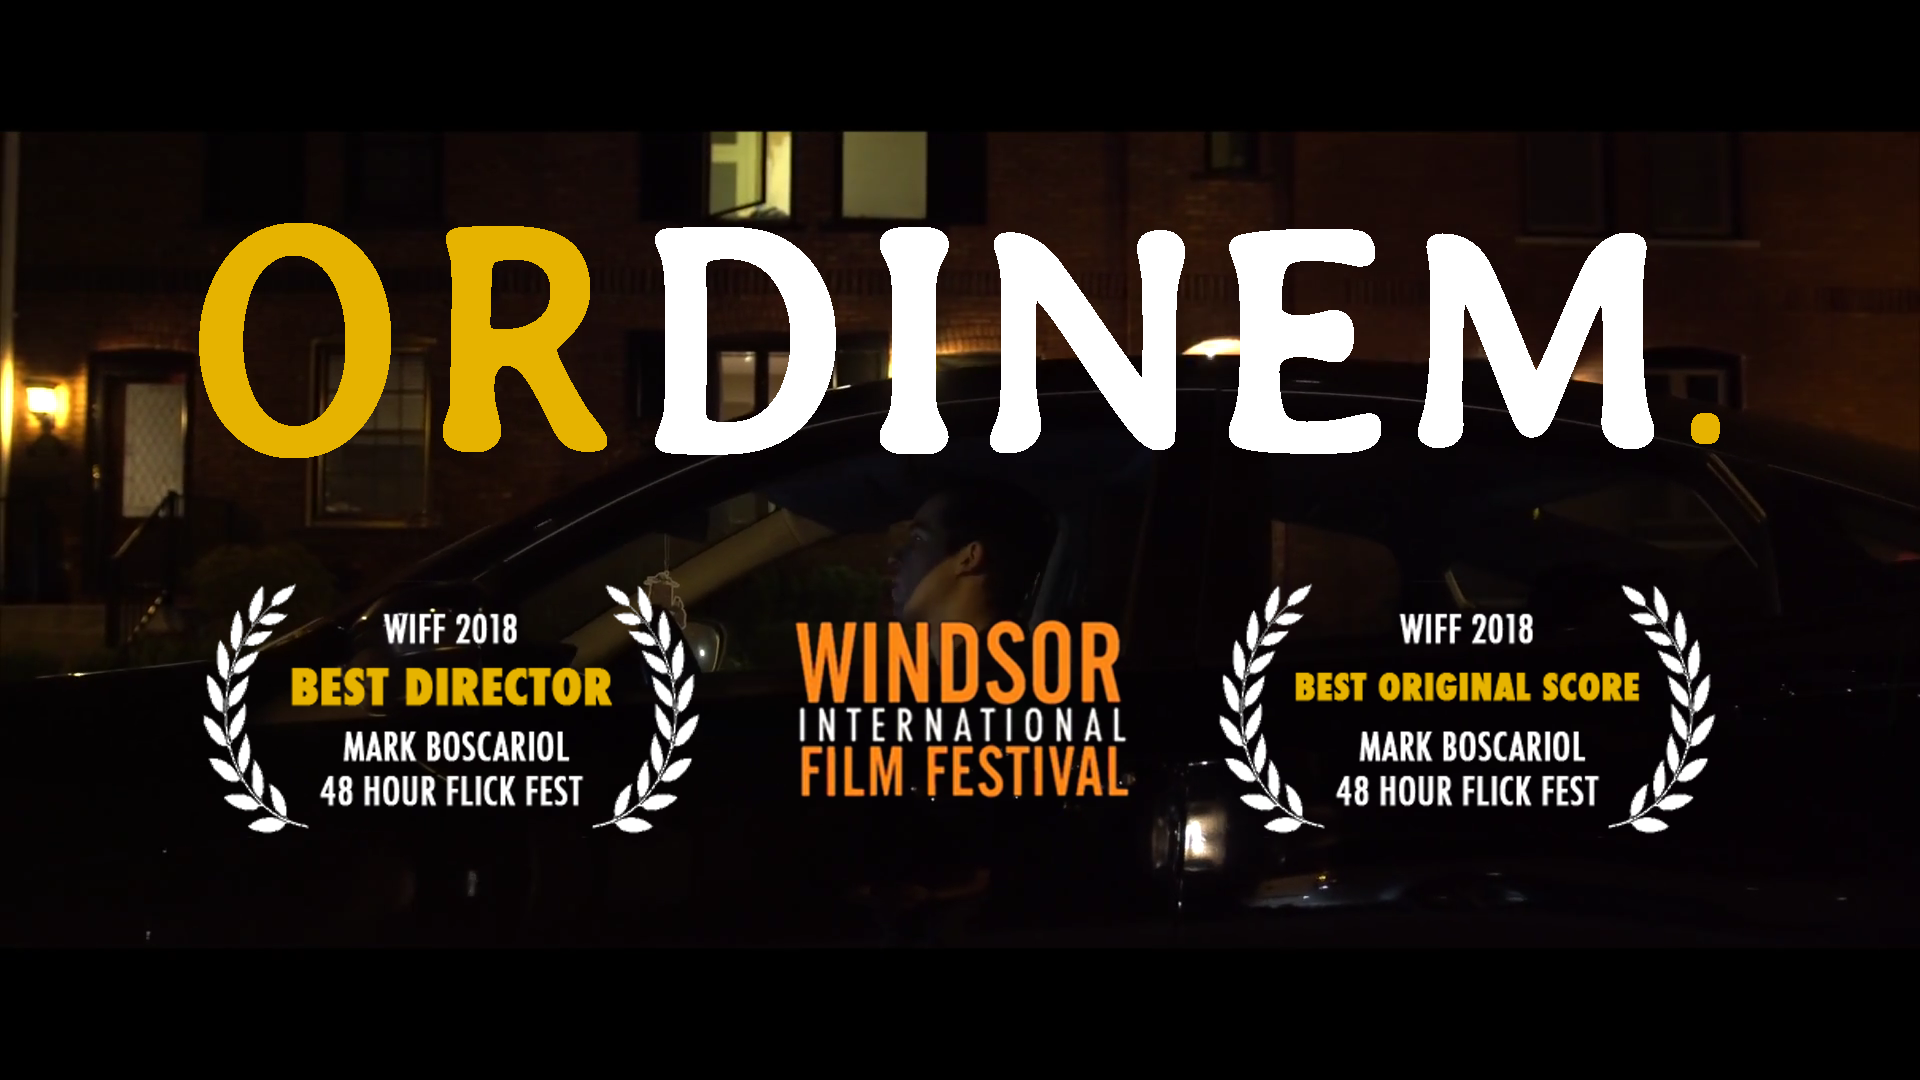 - ZUG FILMS 2018 submission to WINDSOR INTERNATIONAL FILM FESTIVAL'S48 HOUR FLICK FEST.